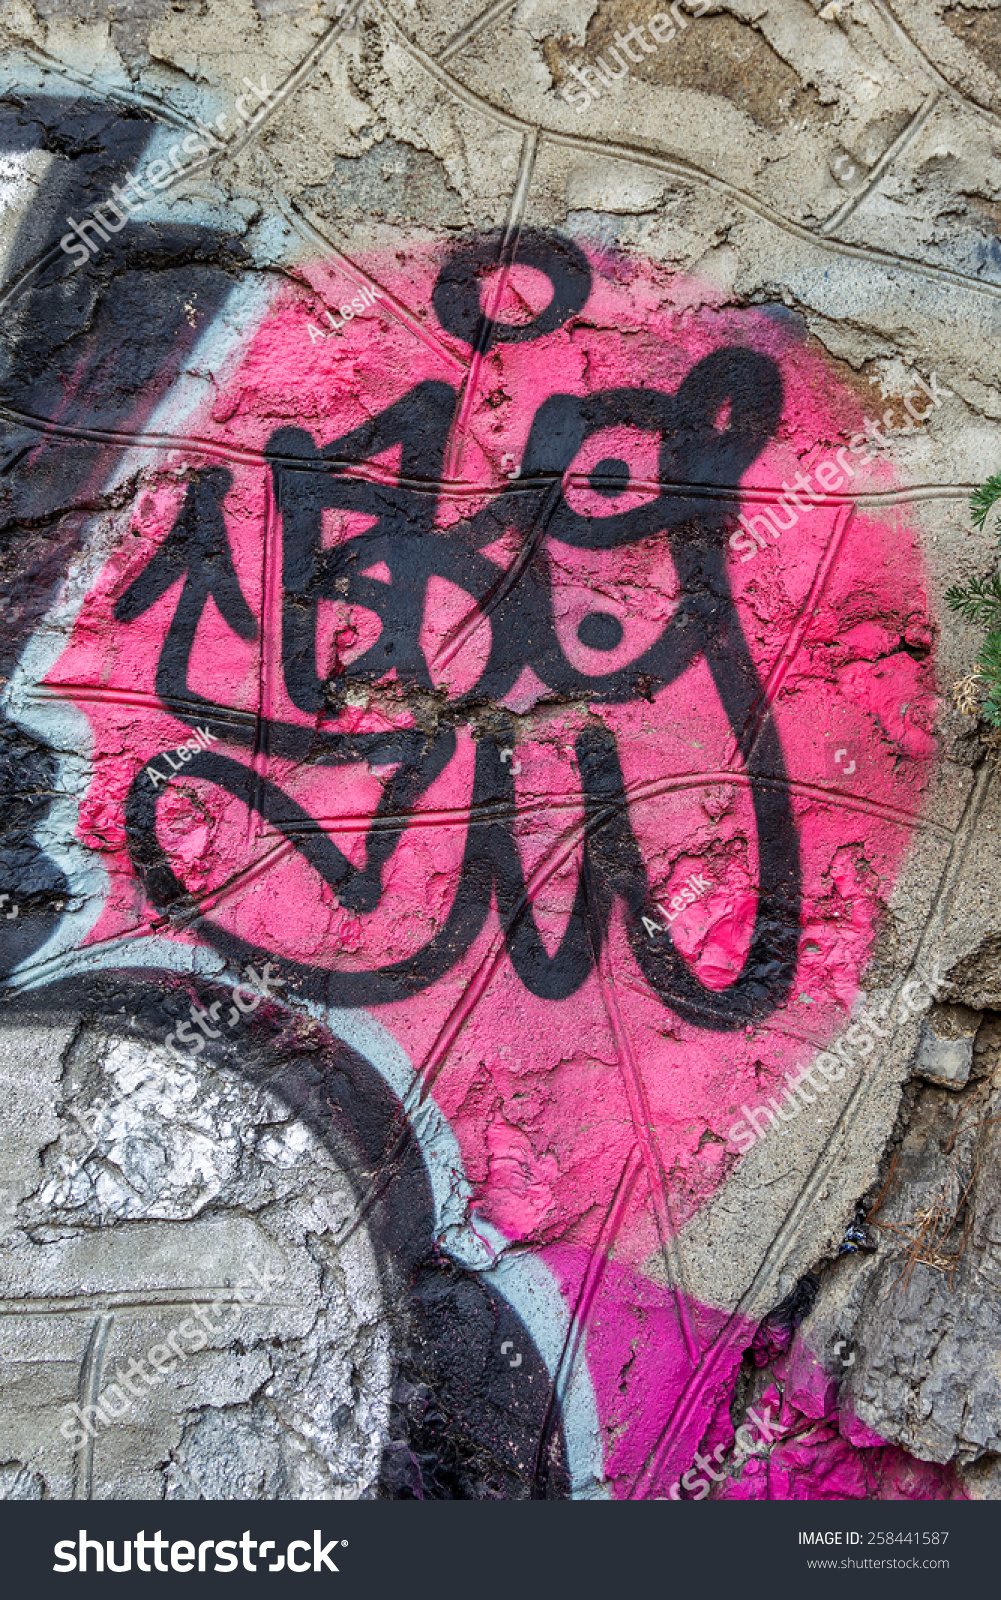 Surface of street wall with spots of abstract graffiti drawings in ...